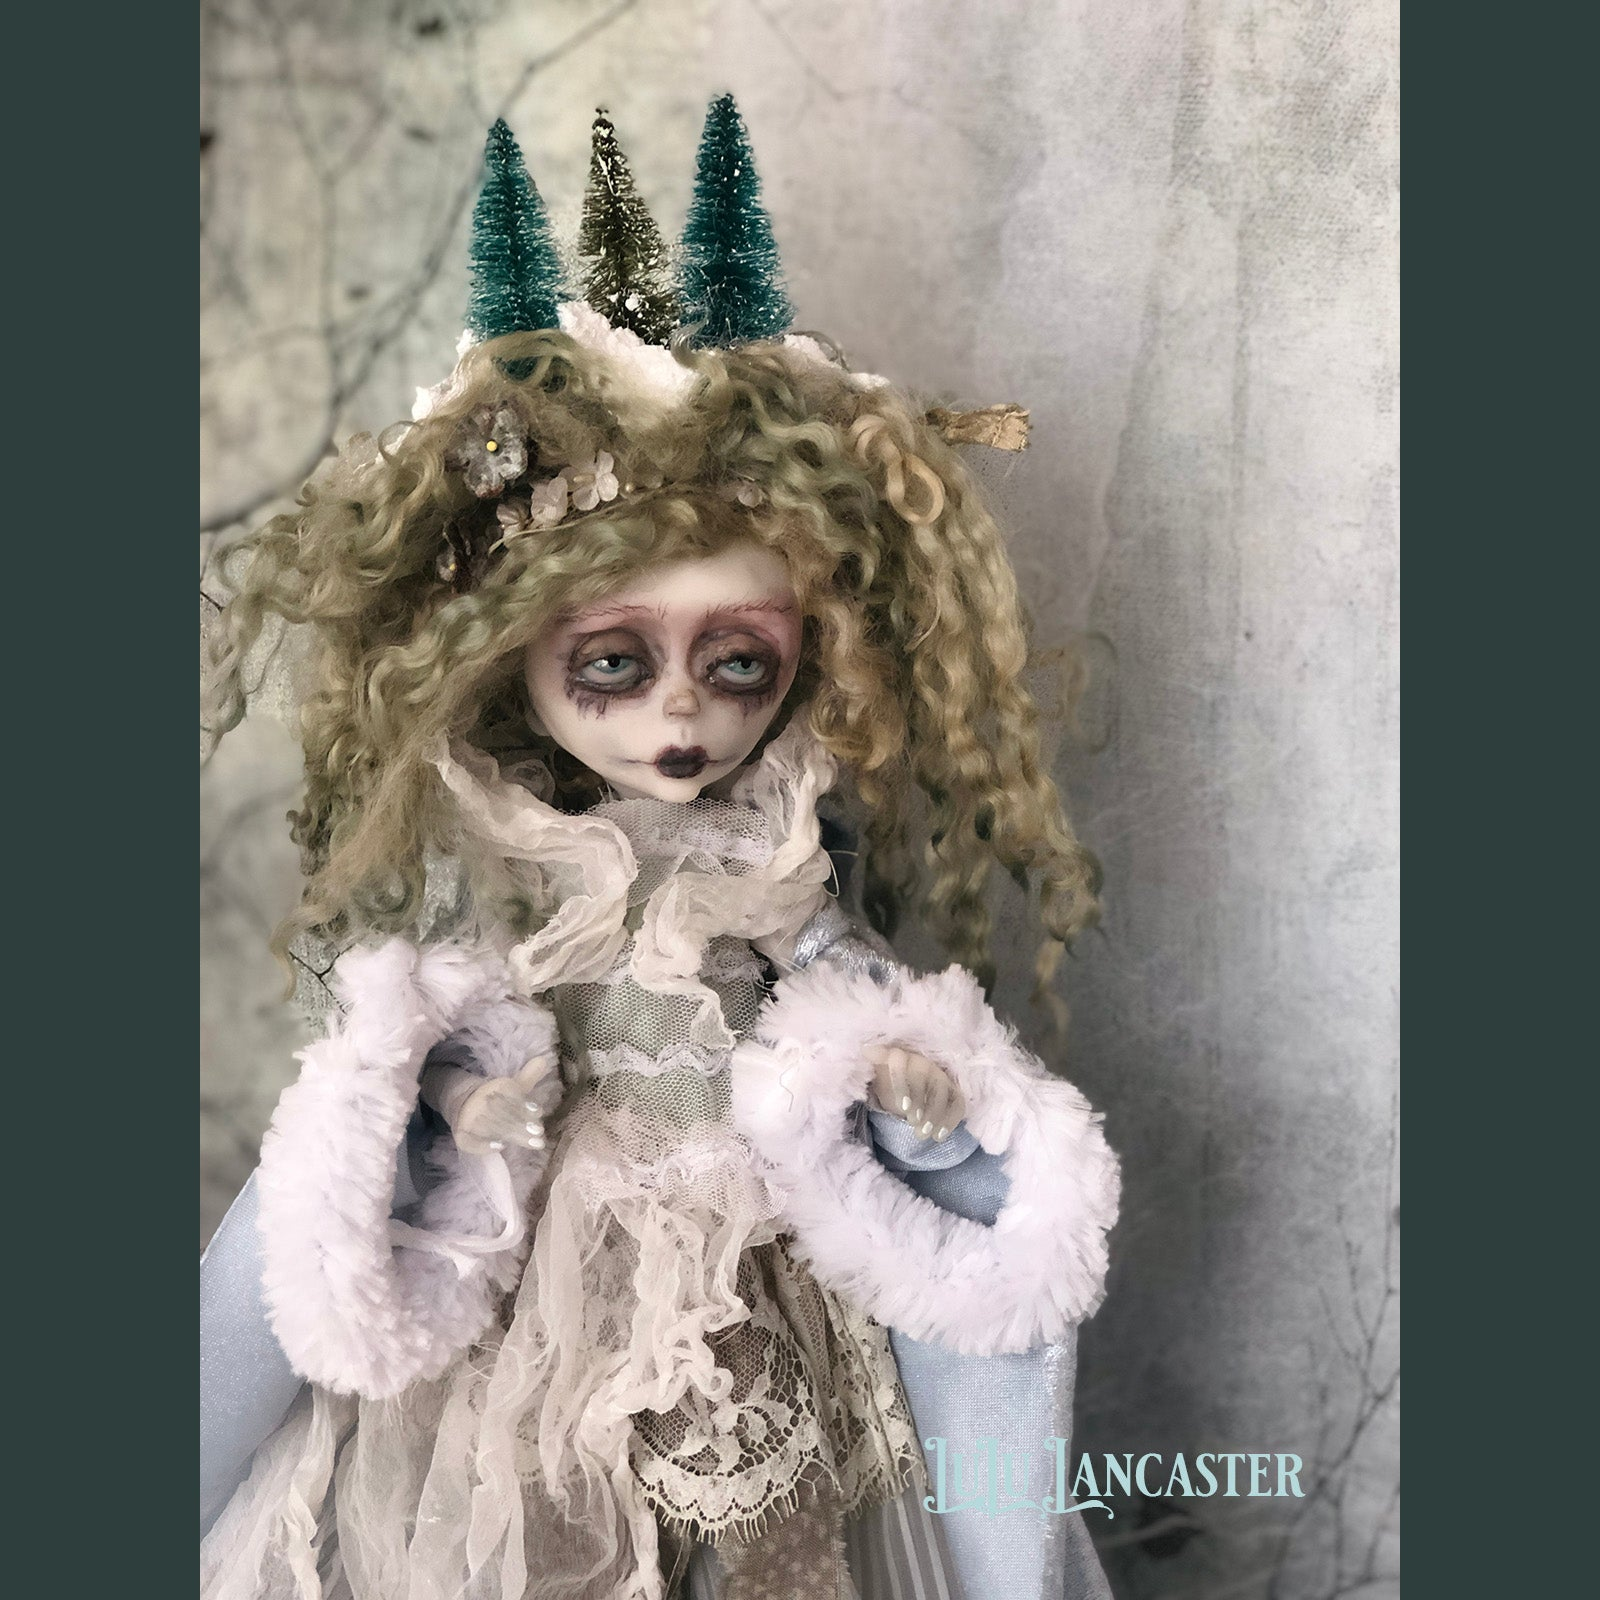 Winter Victorian Christmas OOAK Art Doll LuLu Lancaster